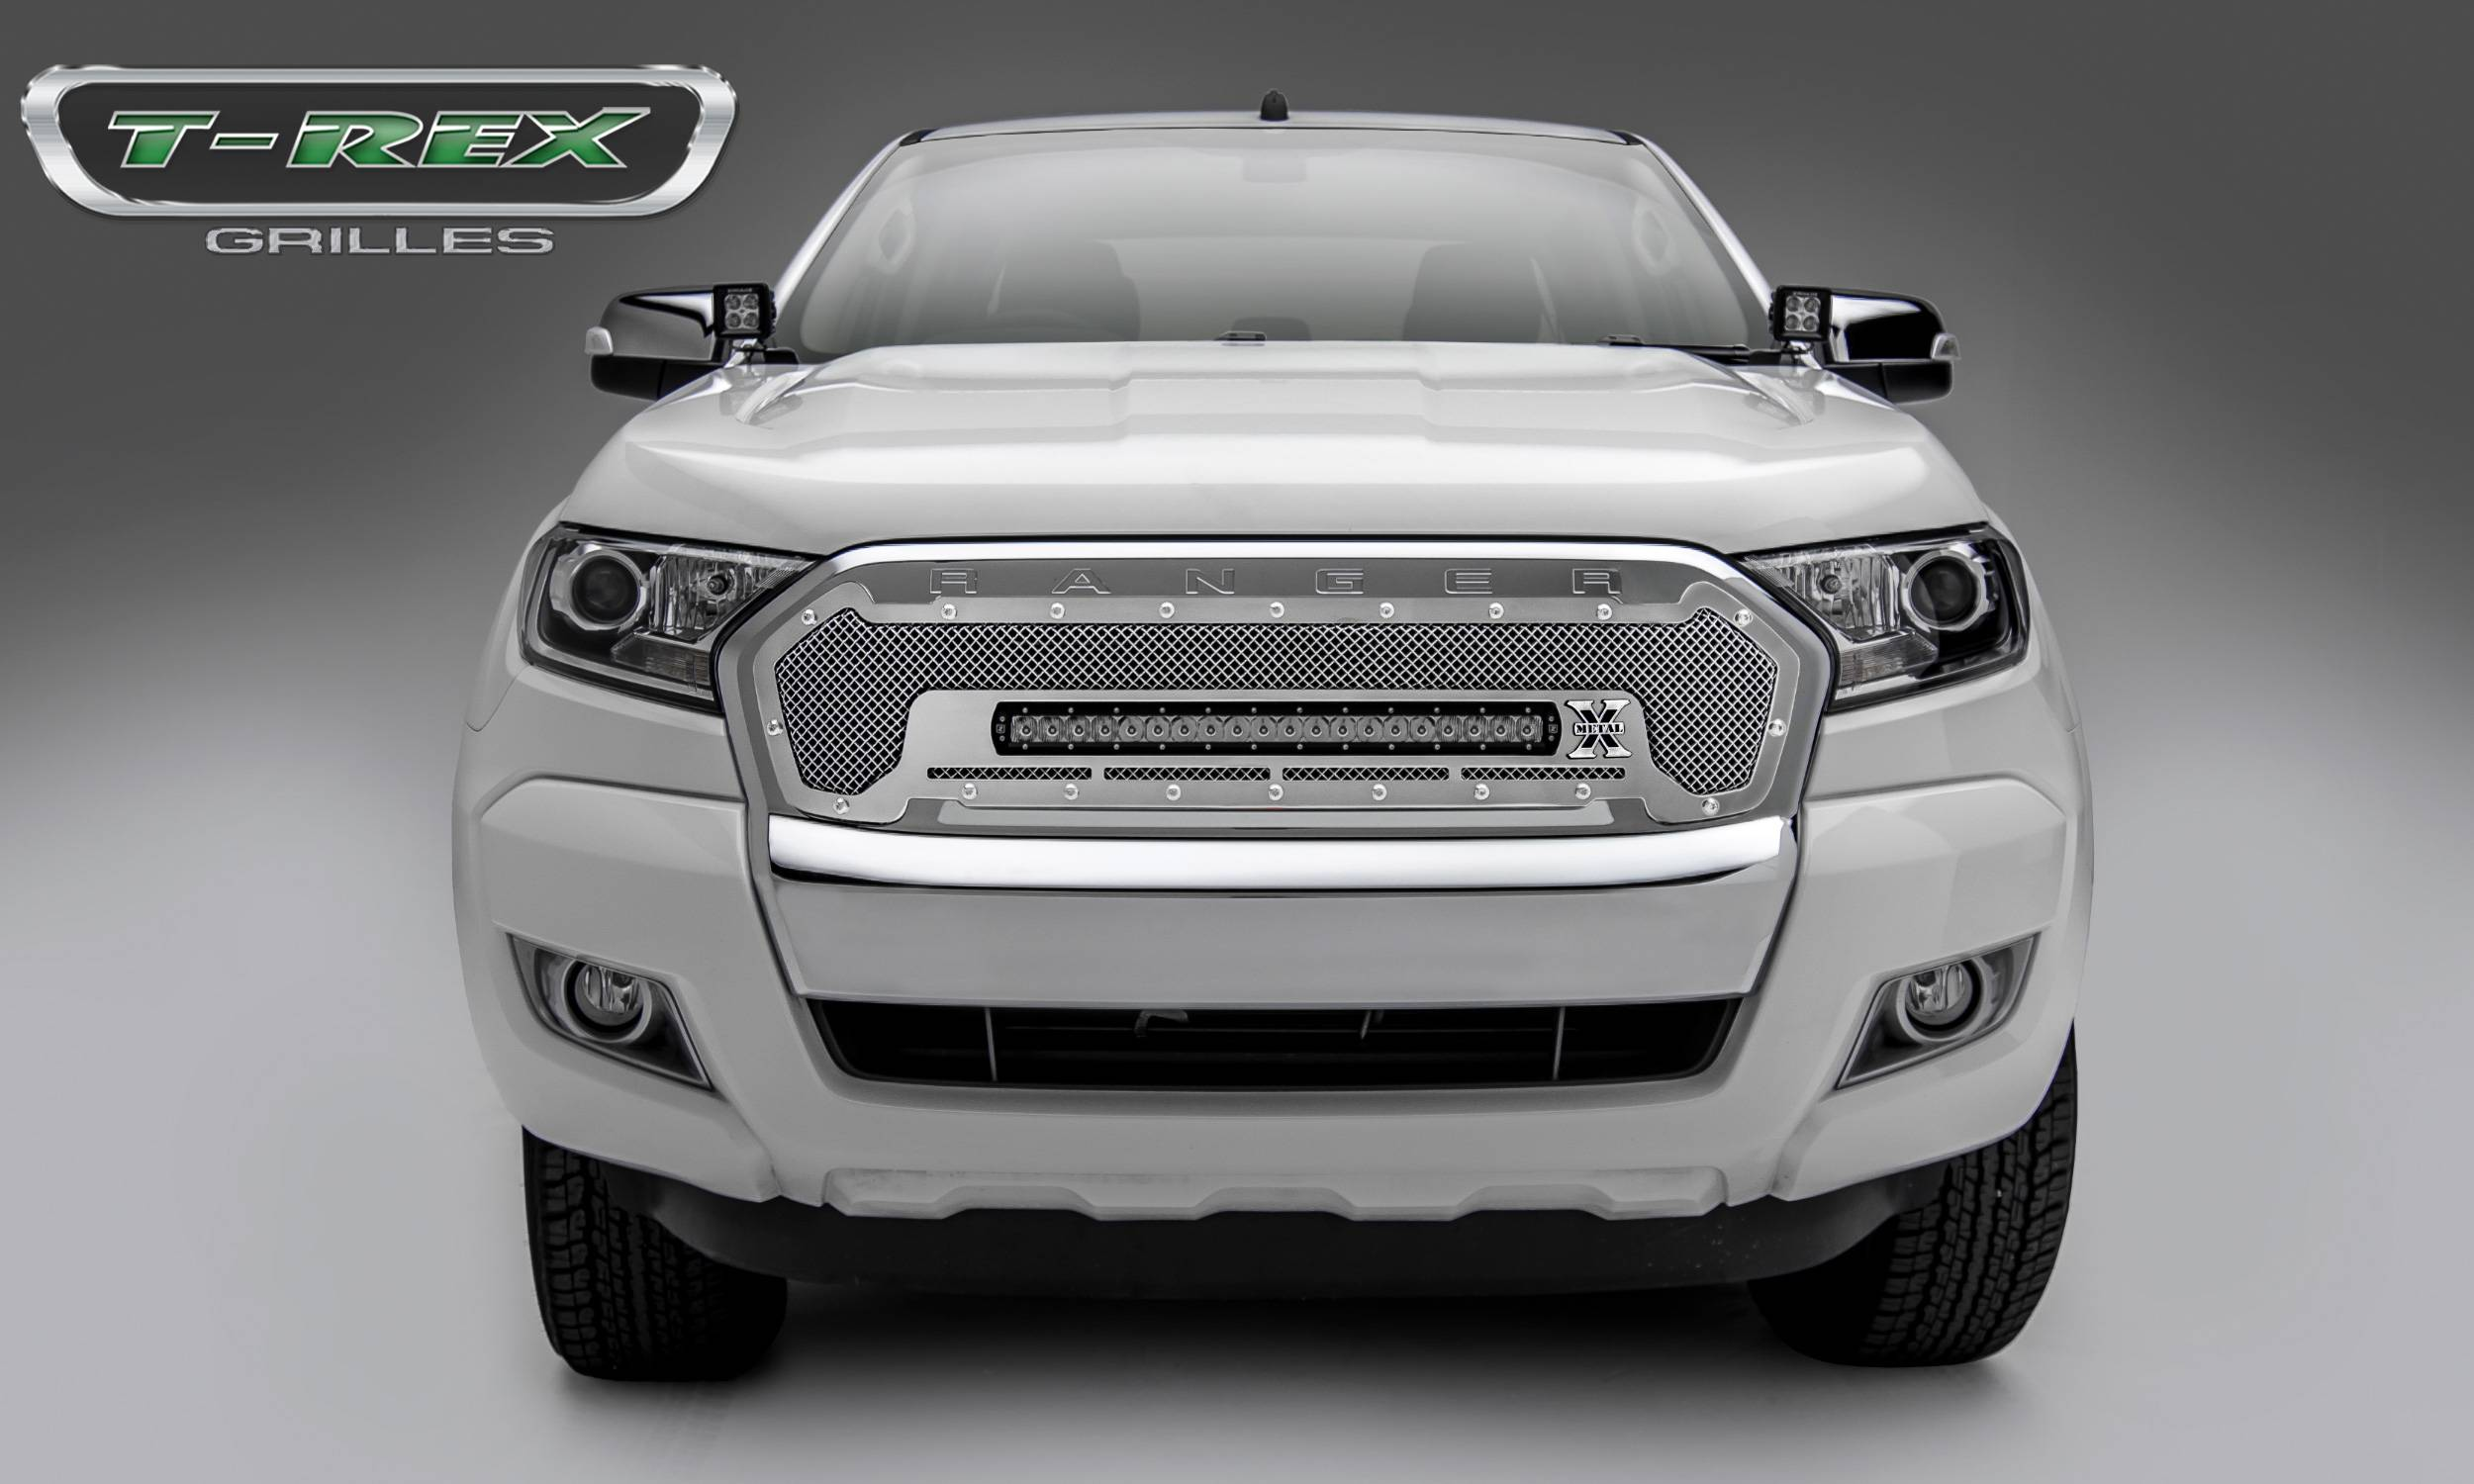 T-REX Ford Ranger T6 -Torch Series - Main Replacement - Grille w/ One 20 Inch Slim Line Single Row LED Light Bar, Polished Stainless Steel - Includes Universal Wiring Harness - Part# 6315760